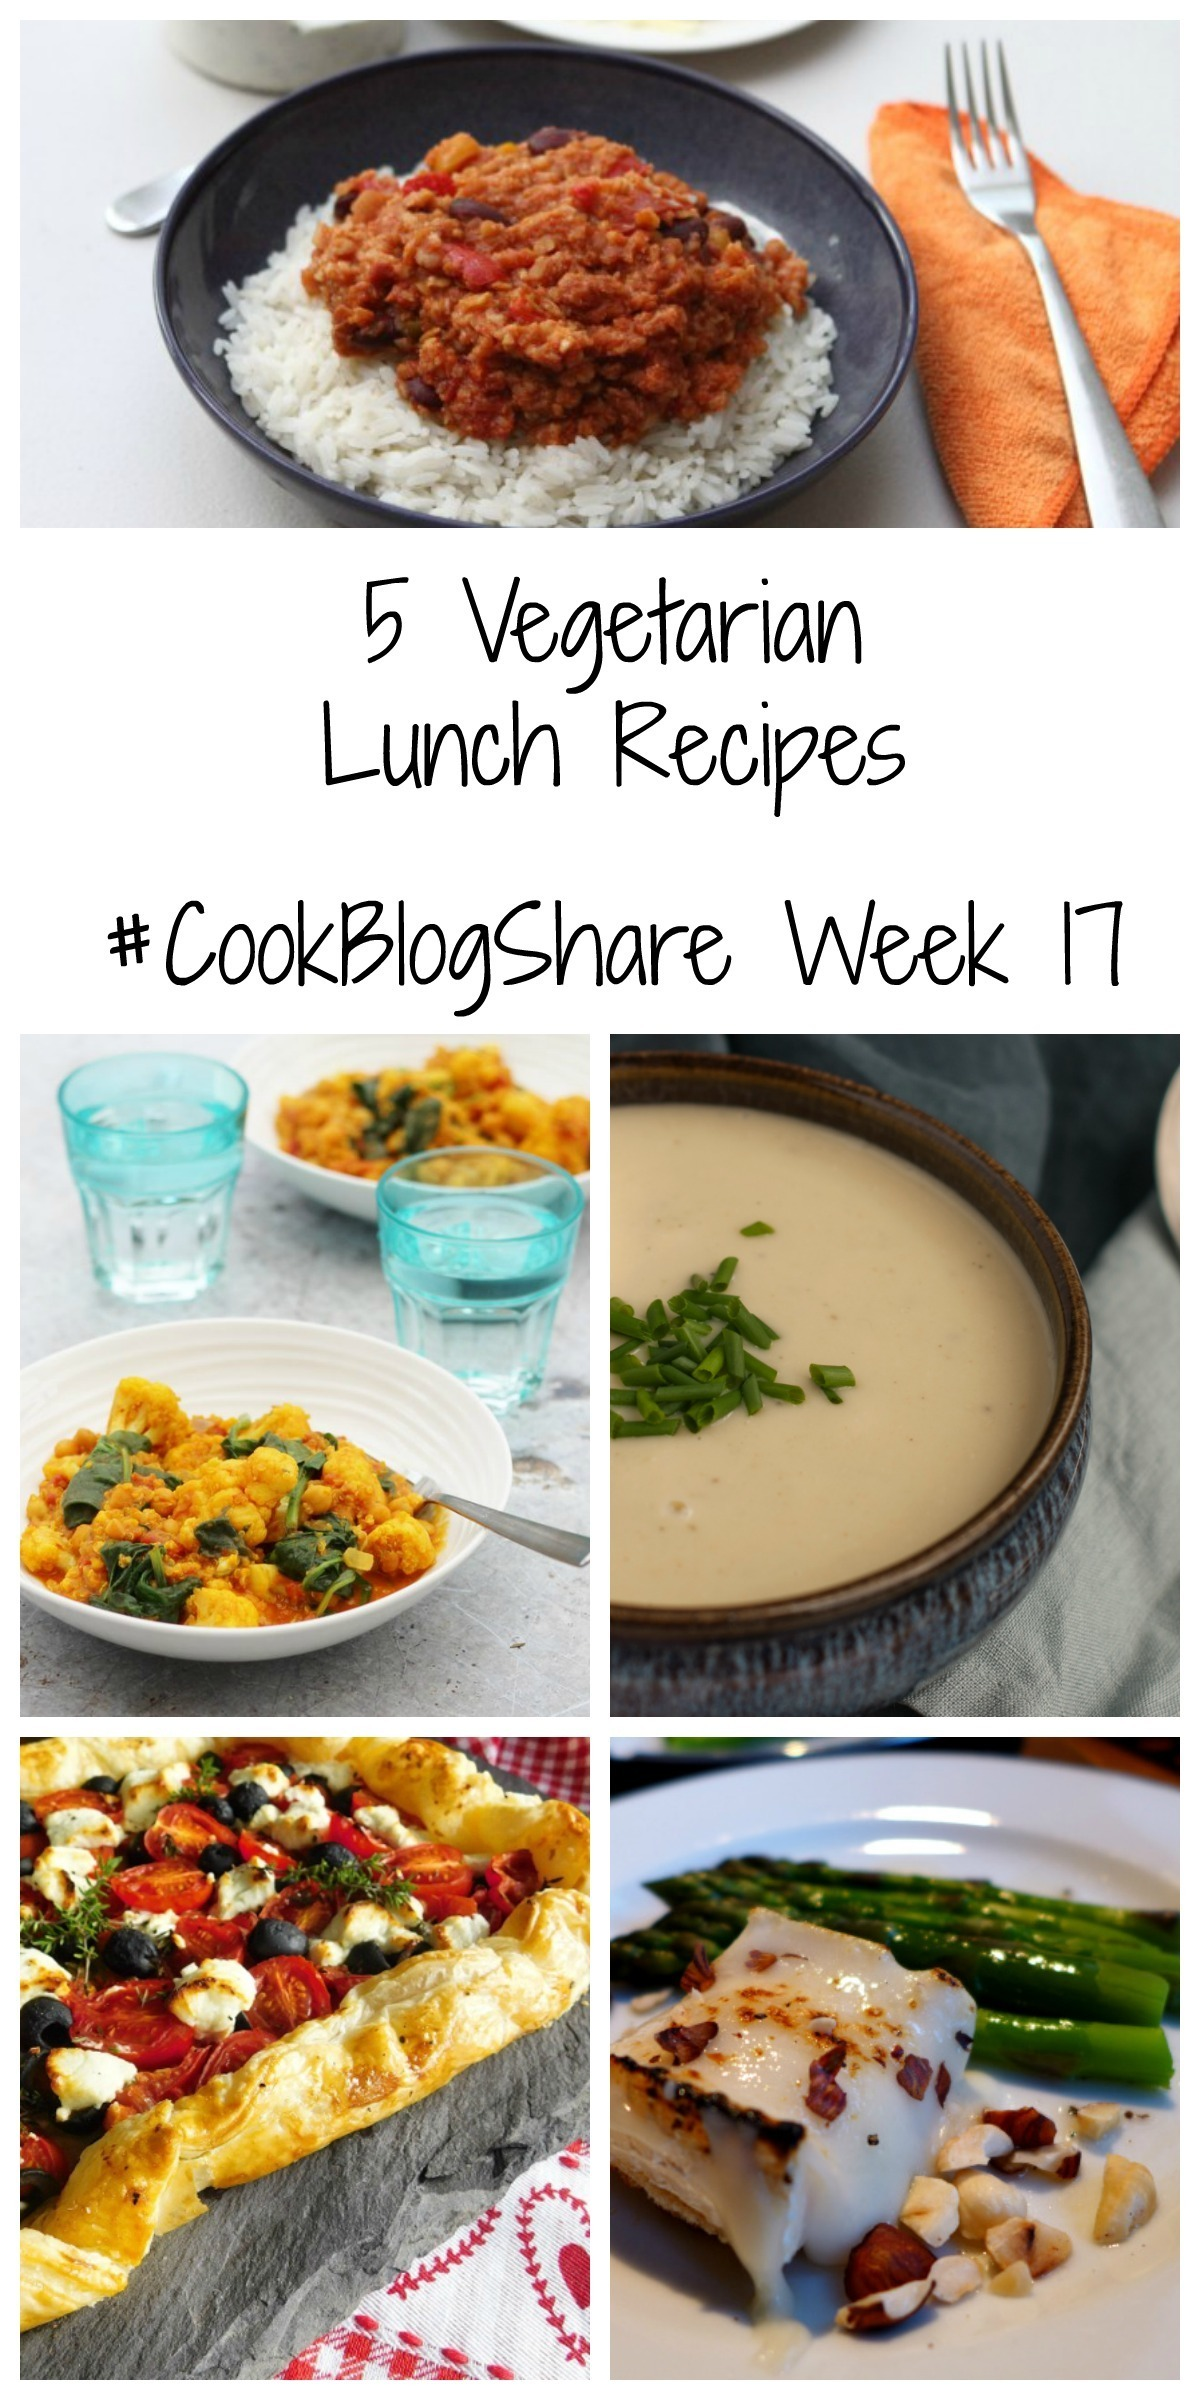 5 Vegetarian Lunch Recipes CookBlogShare Week 17